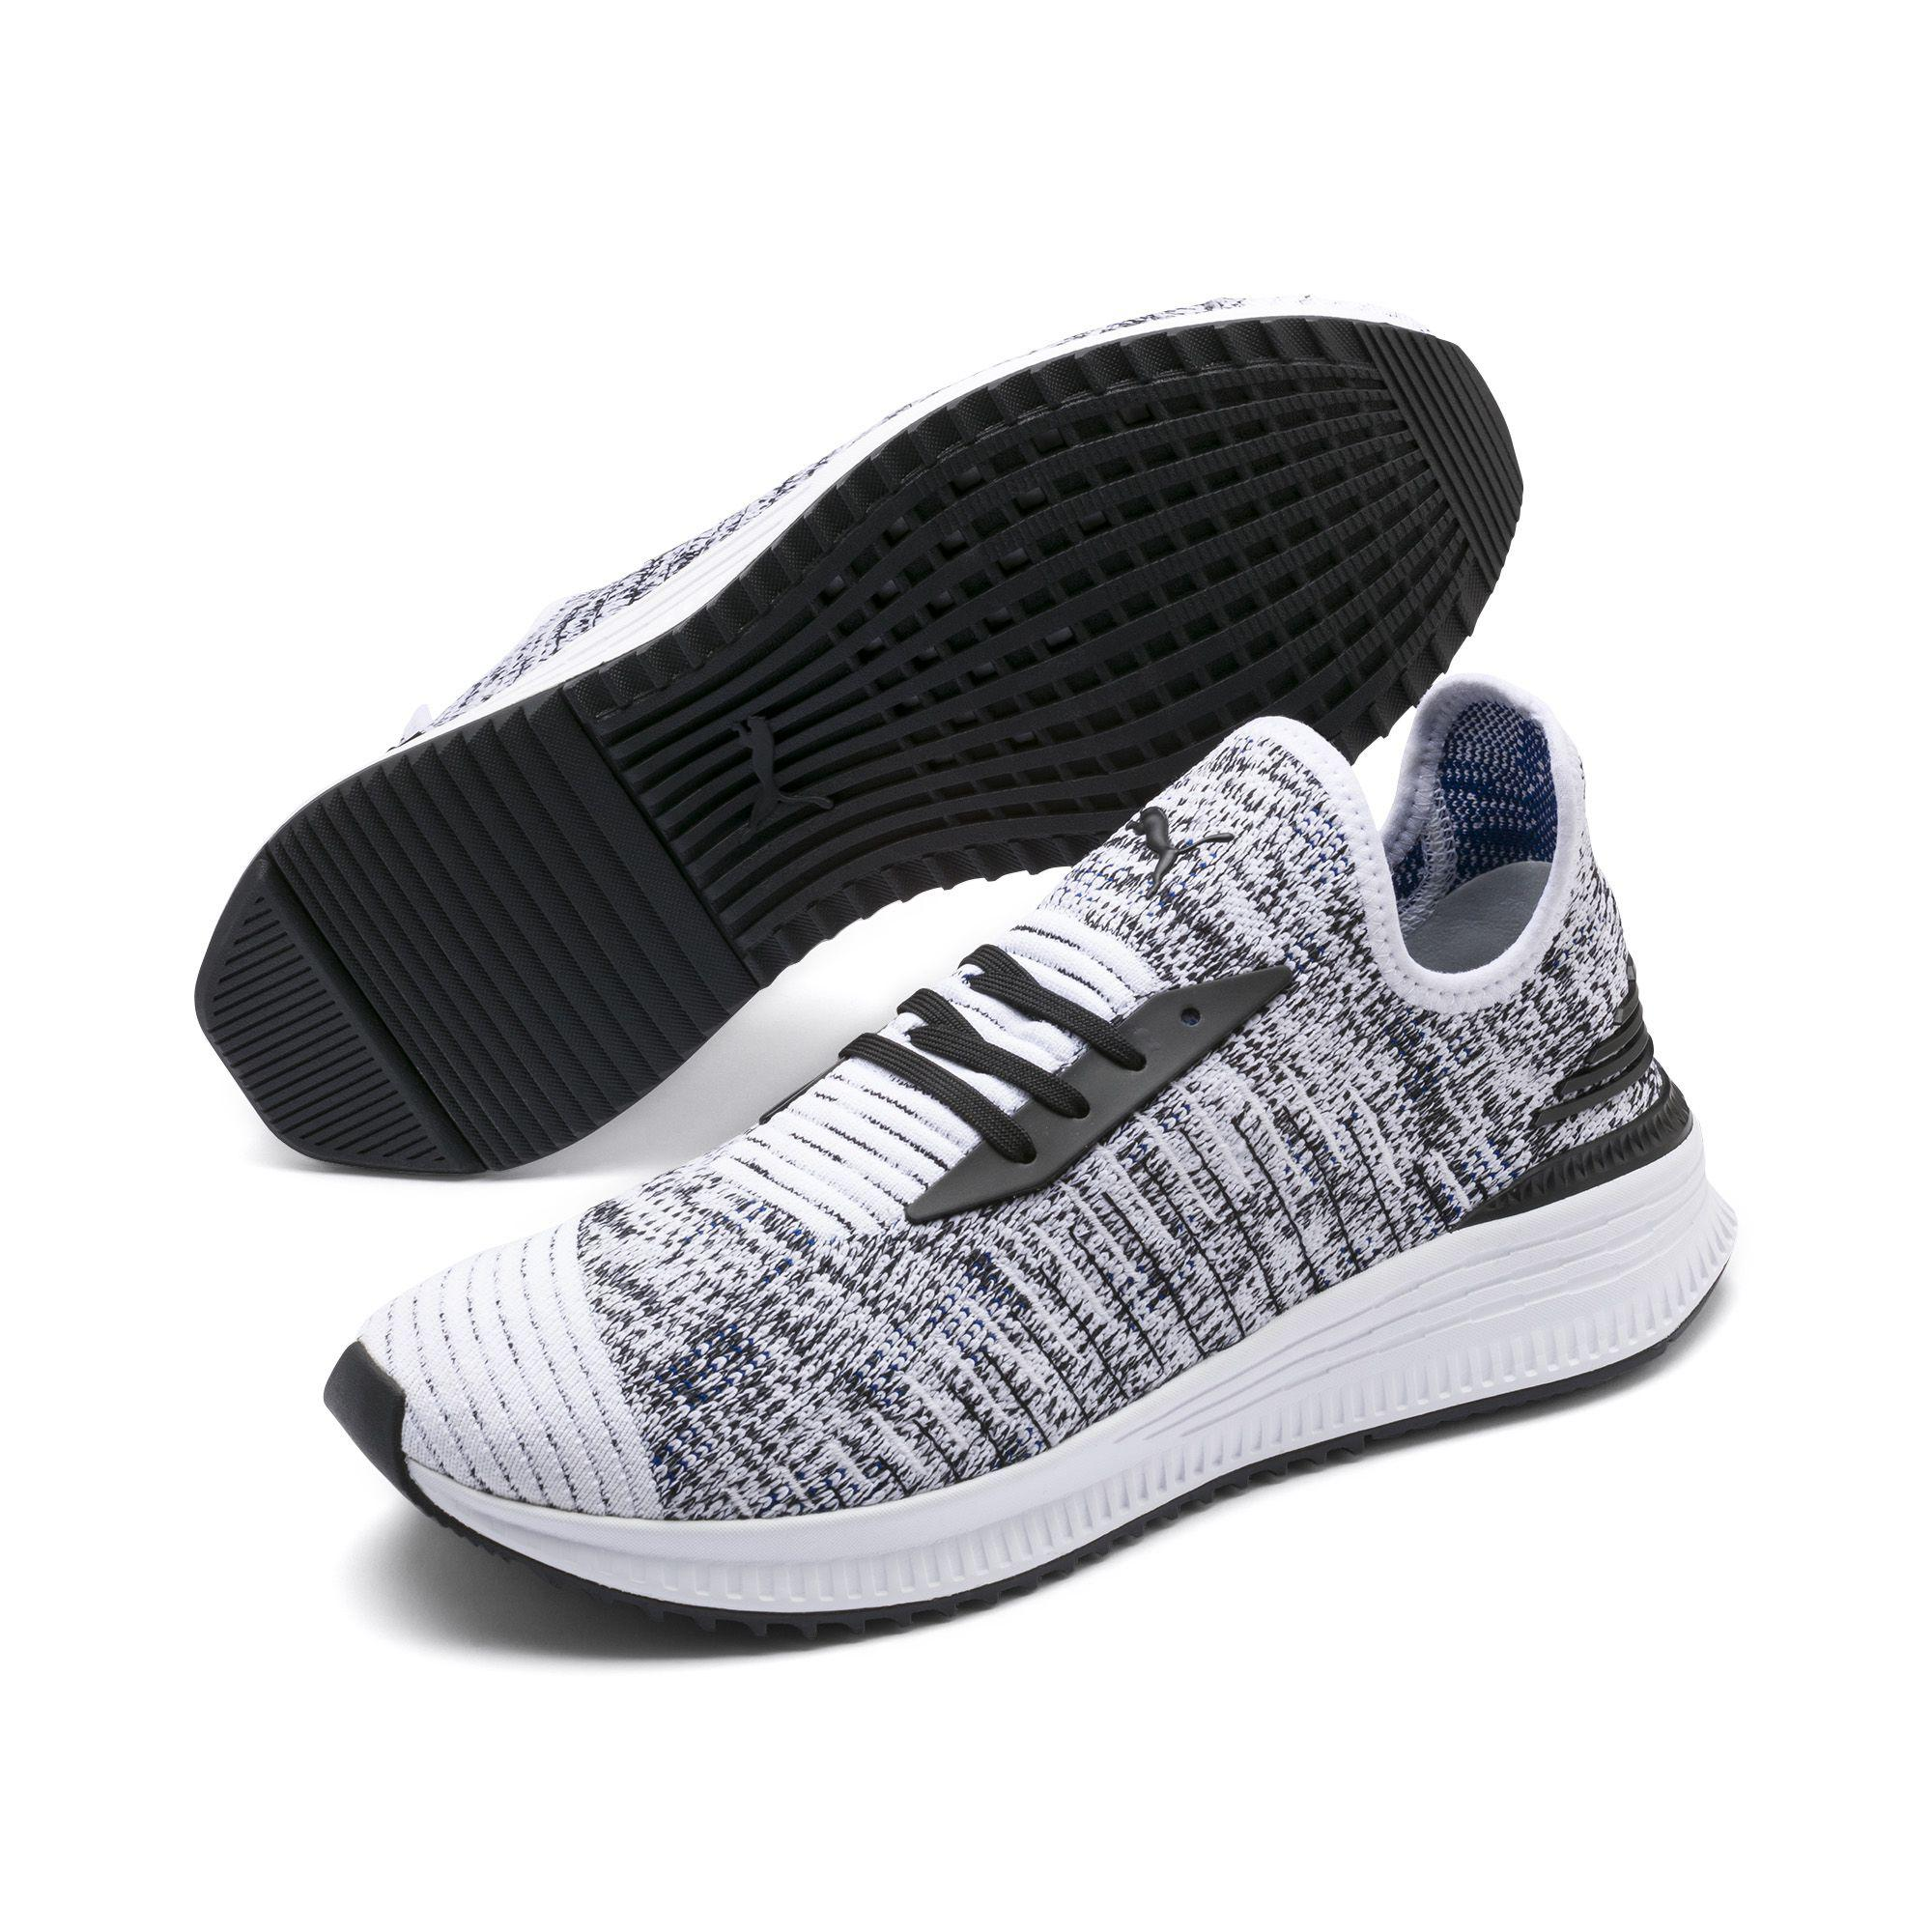 b0104b1e1bb PUMA - Blue Avid Evoknit Mosaic Evolution Sneakers for Men - Lyst. View  fullscreen